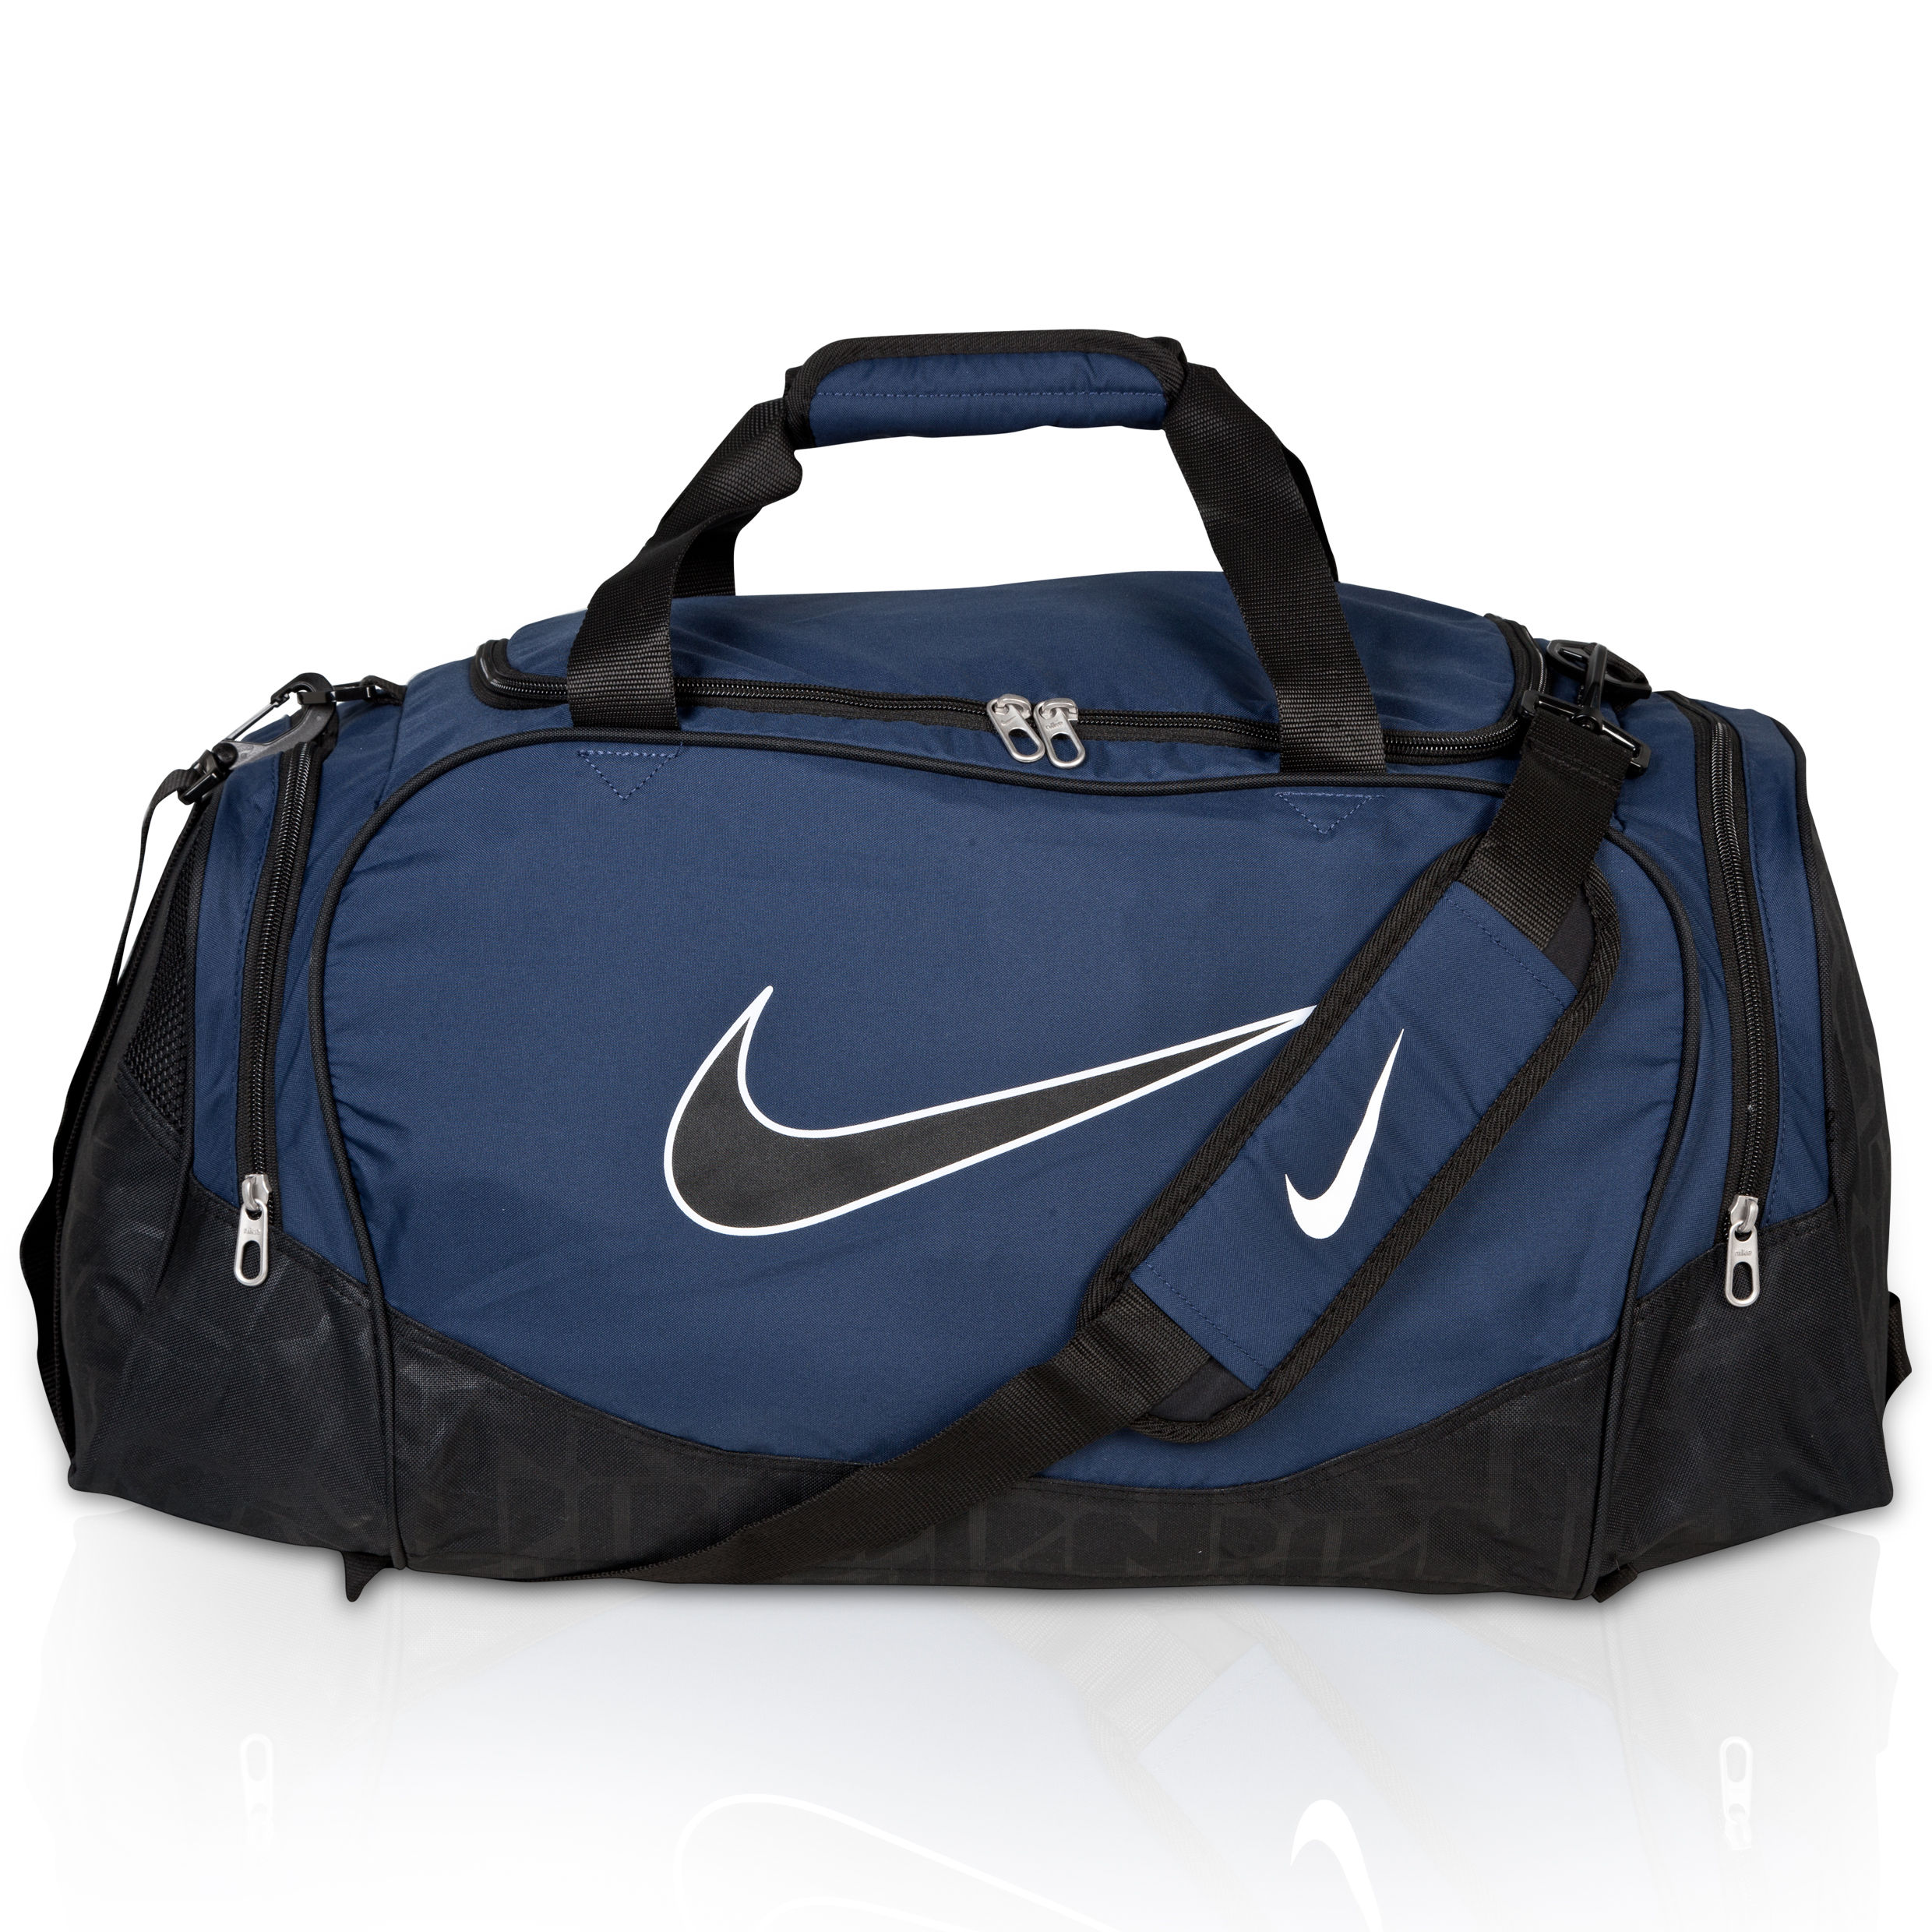 Nike Brasilia 5 Medium Duffel Bag - Midnight Navy/Black/Black Navy